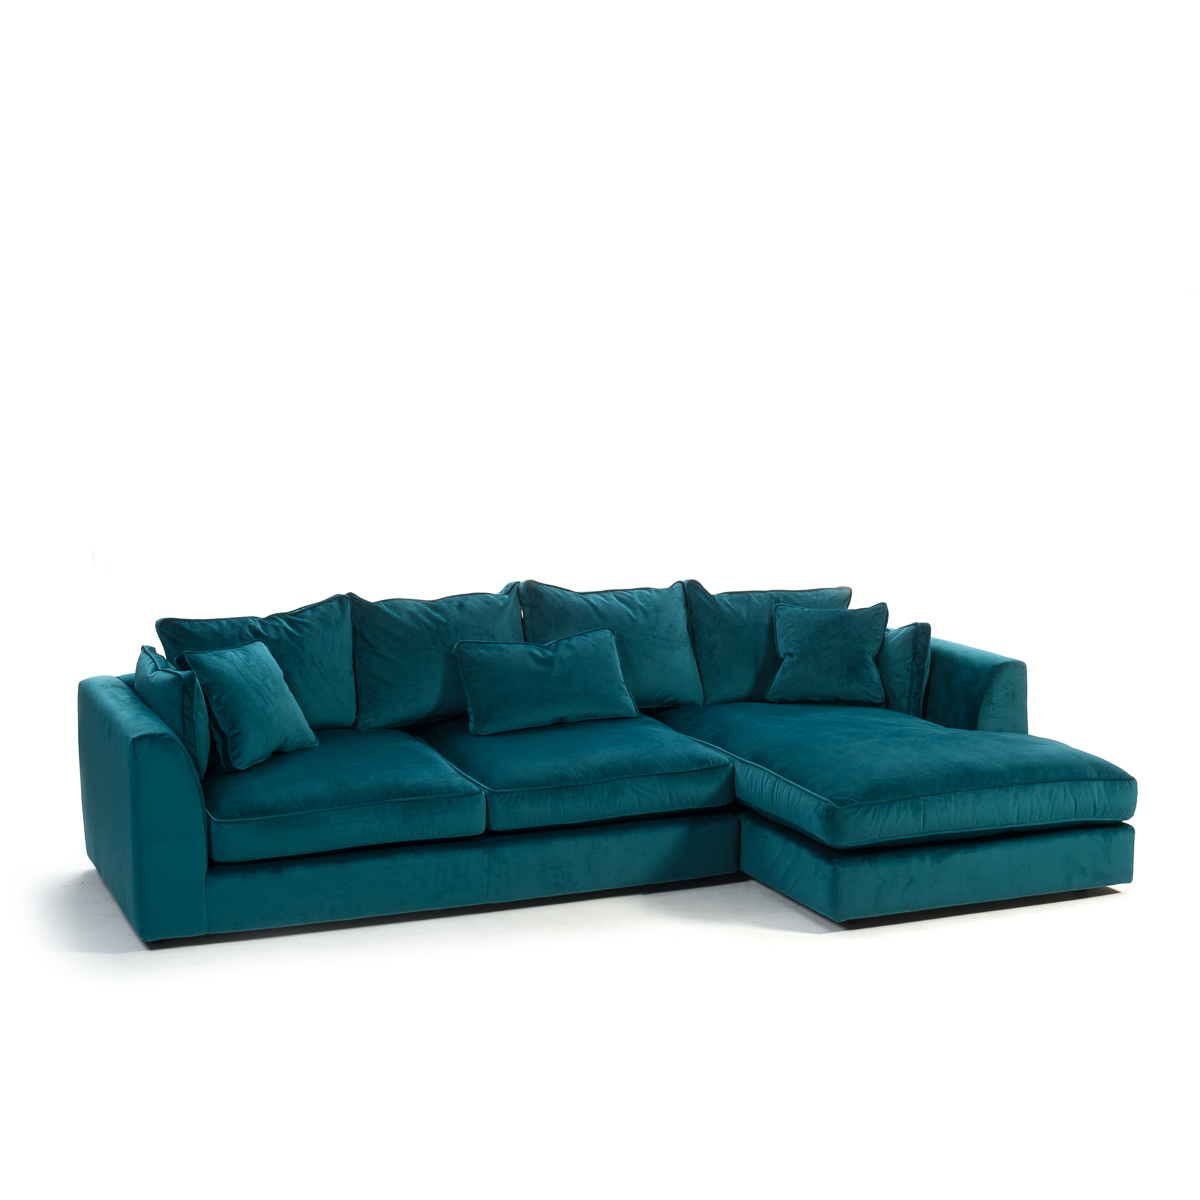 Prescott Large Chaise Sofa